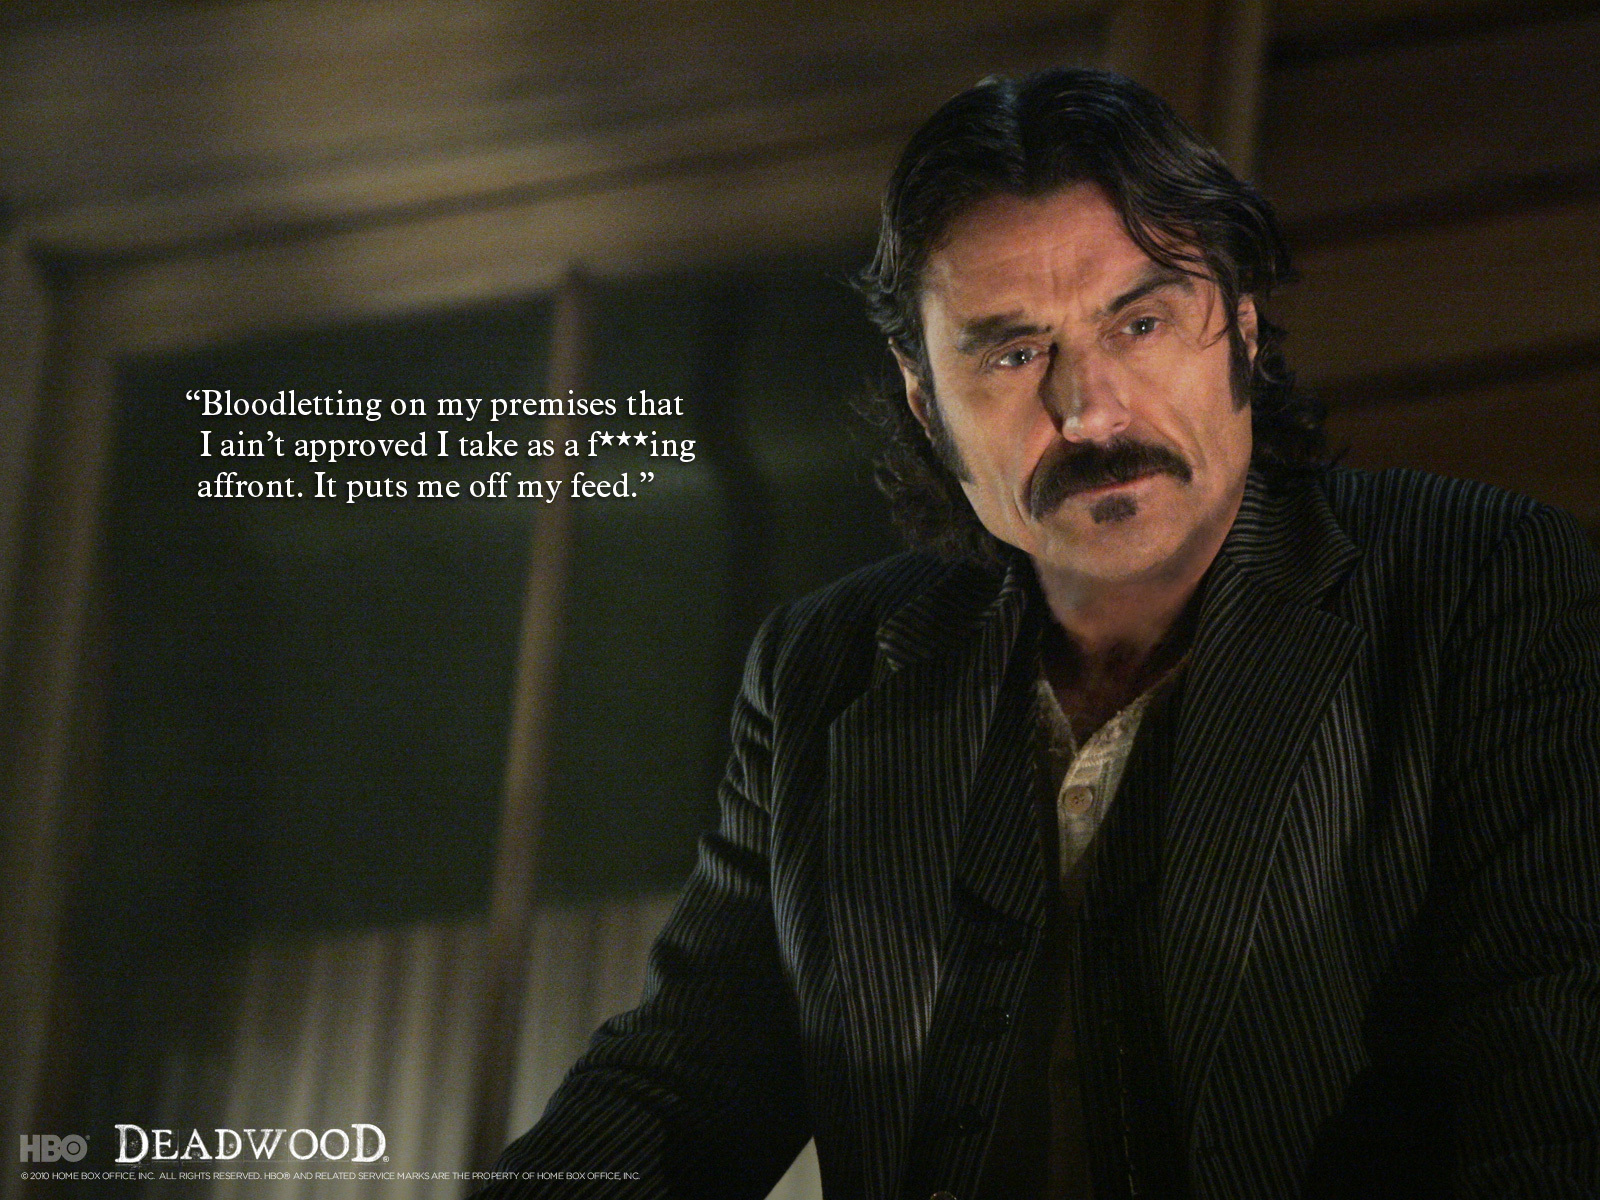 Al-Swearengen-deadwood-18856743-1600-1200.jpg